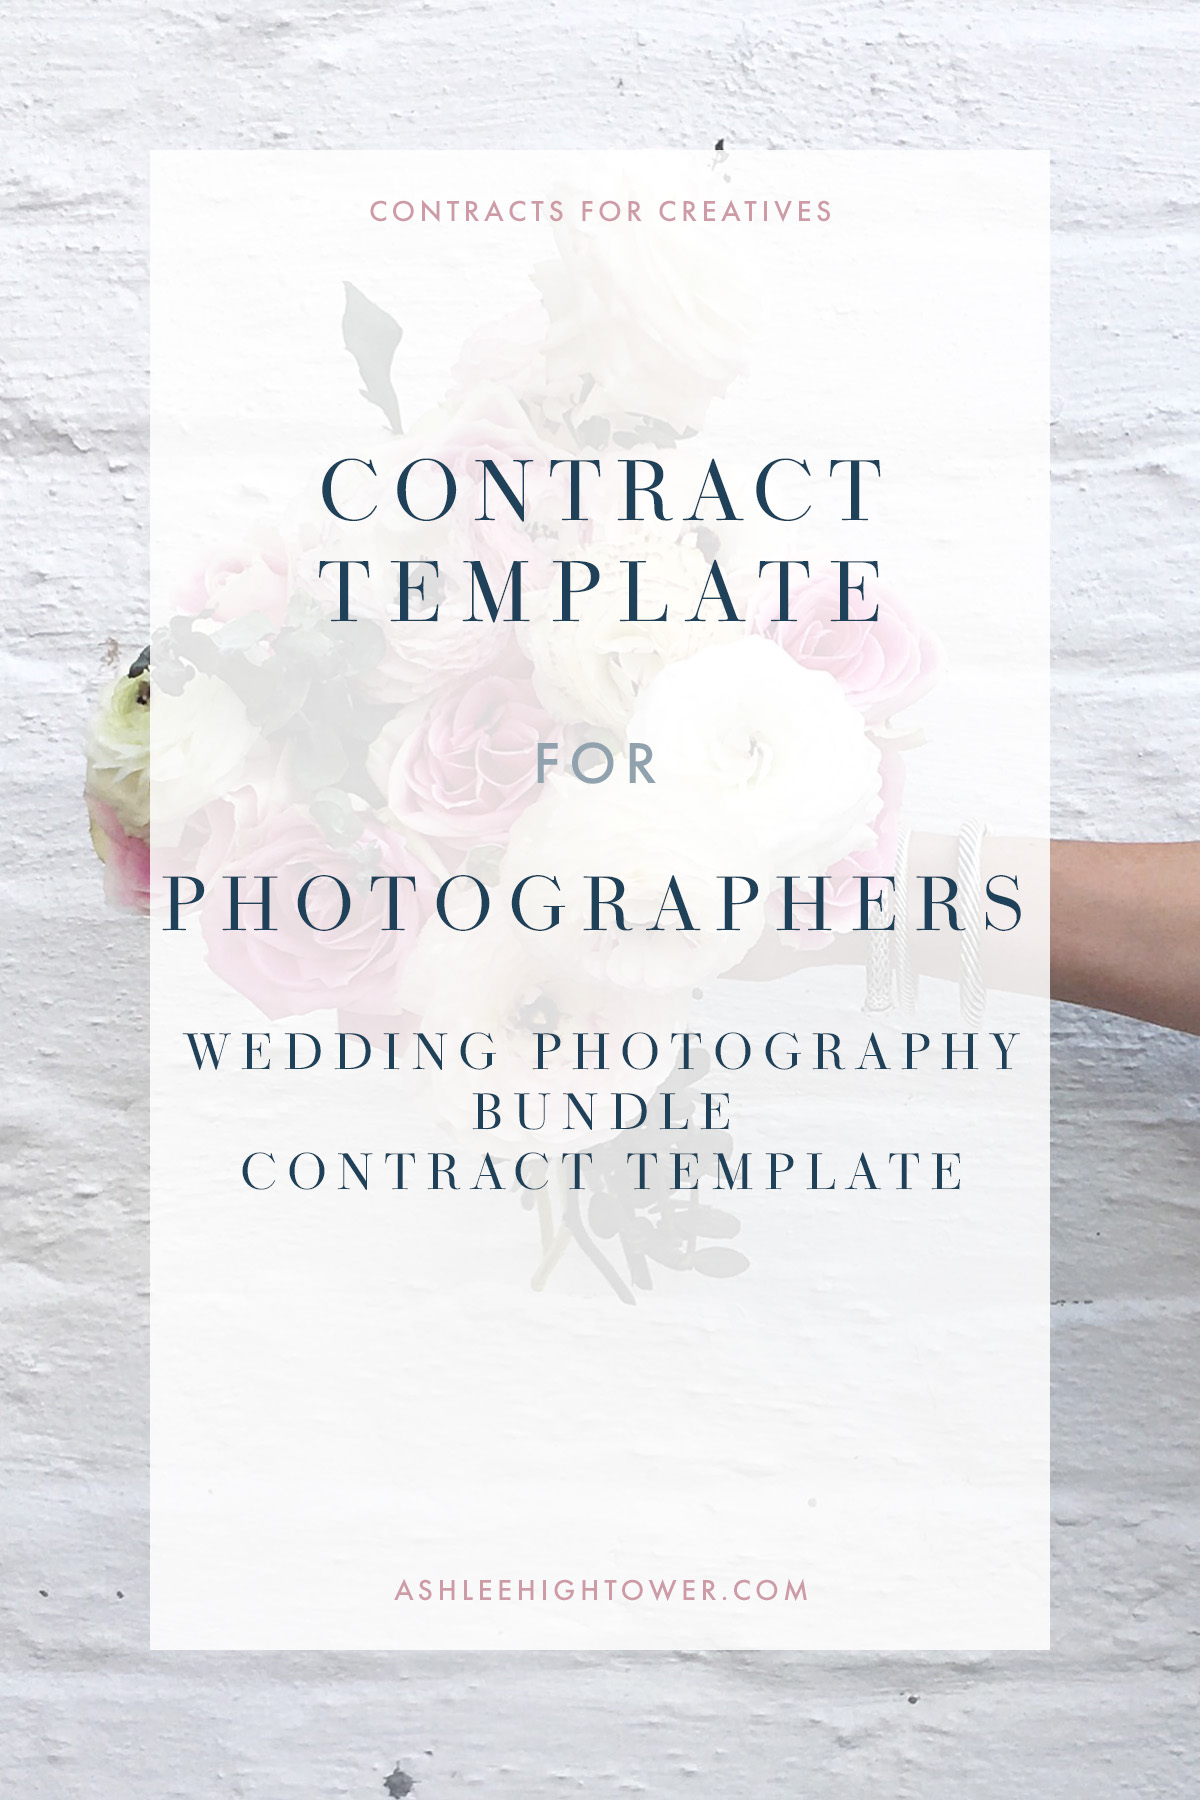 Contracts for Creatives | Wedding Photography Bundle | Engagement Session + Wedding Day Photography Contract Template - | Photographer Contracts | Ashlee Hightower